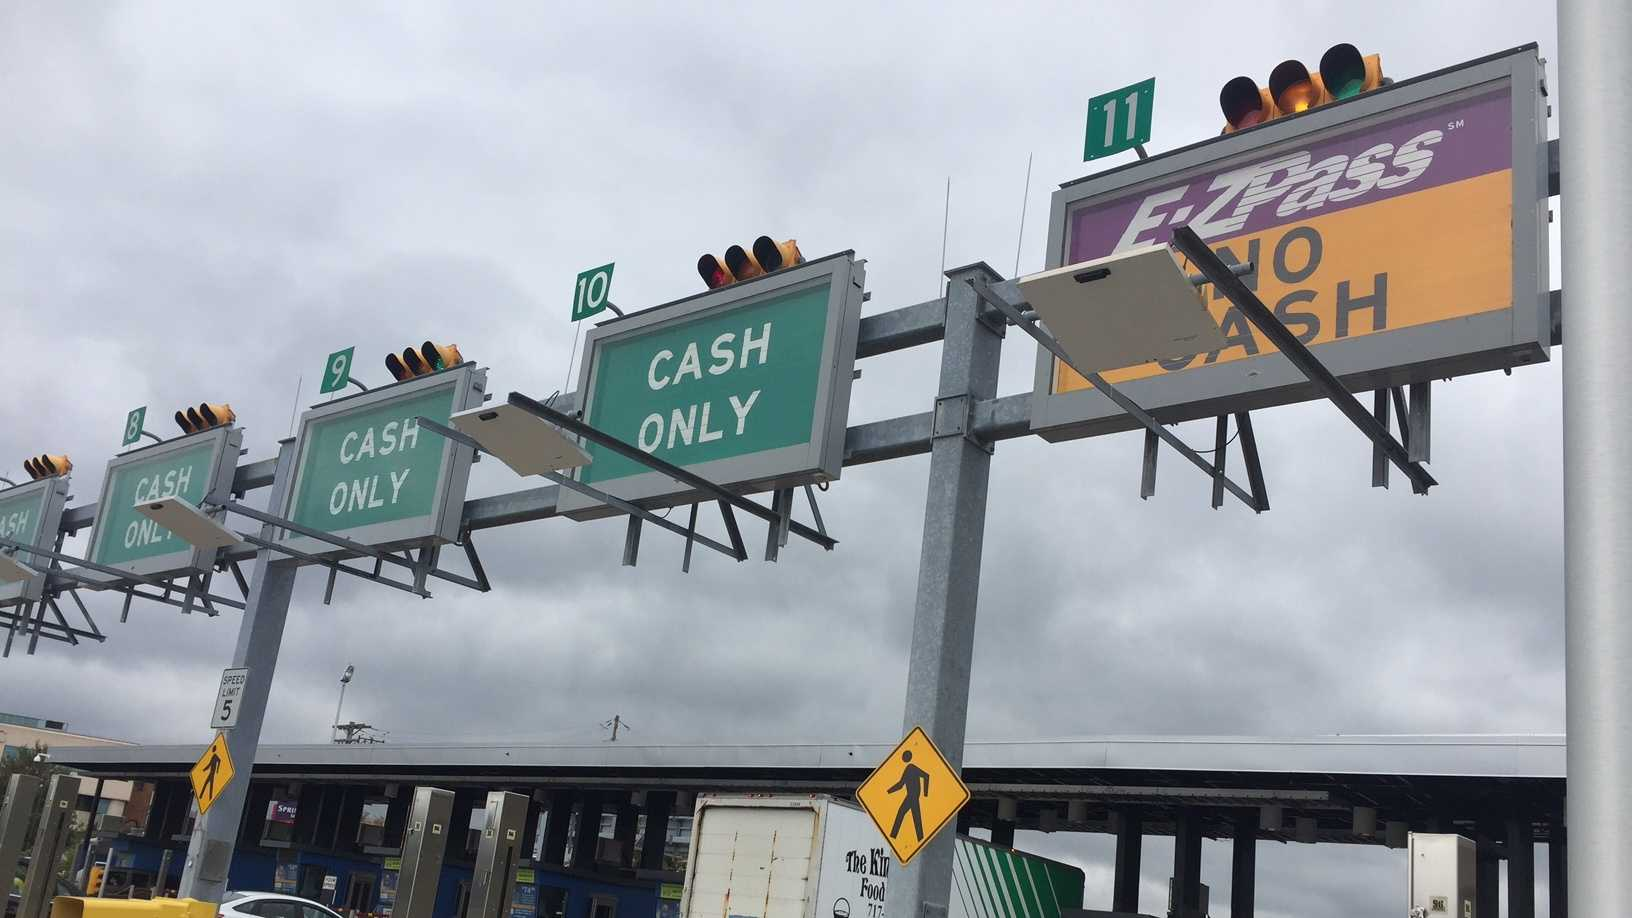 Pennsylvania Turnpike tollbooths, e-ZPass, cash only